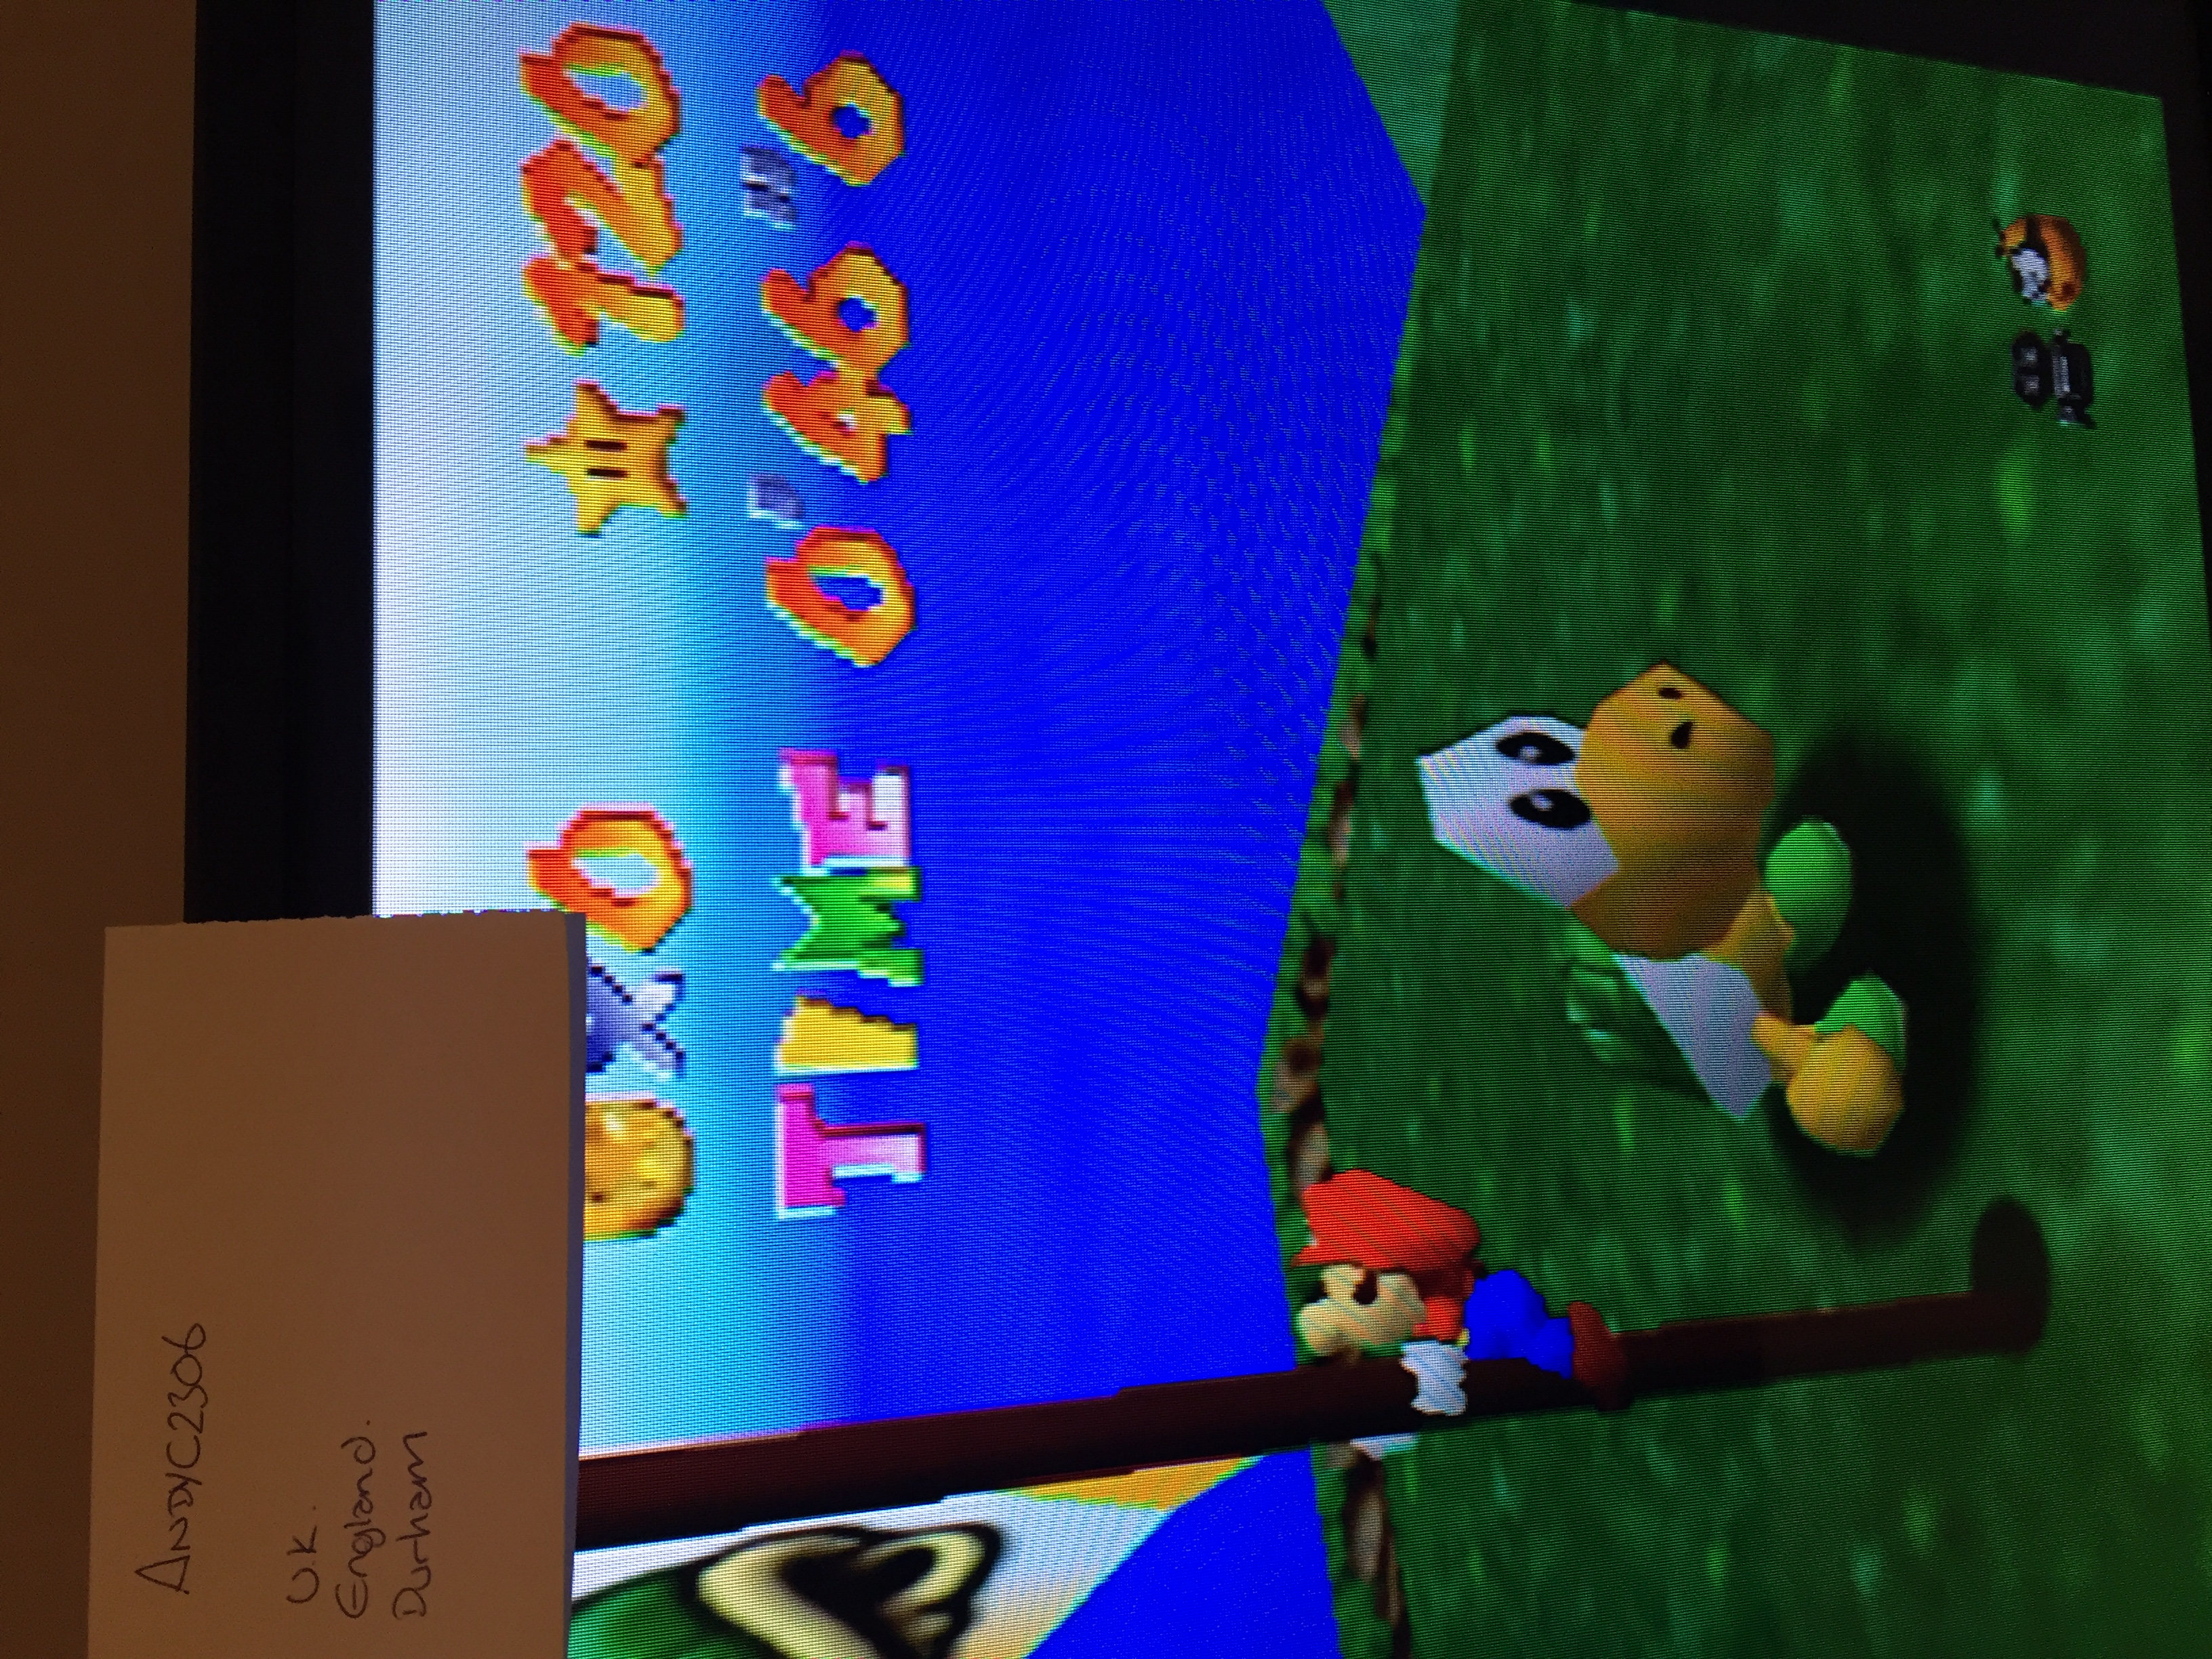 AndyC2306: Super Mario 64: Footrace with Koopa The Quick (Wii Virtual Console: N64) 0:00:46.6 points on 2016-01-22 14:36:30